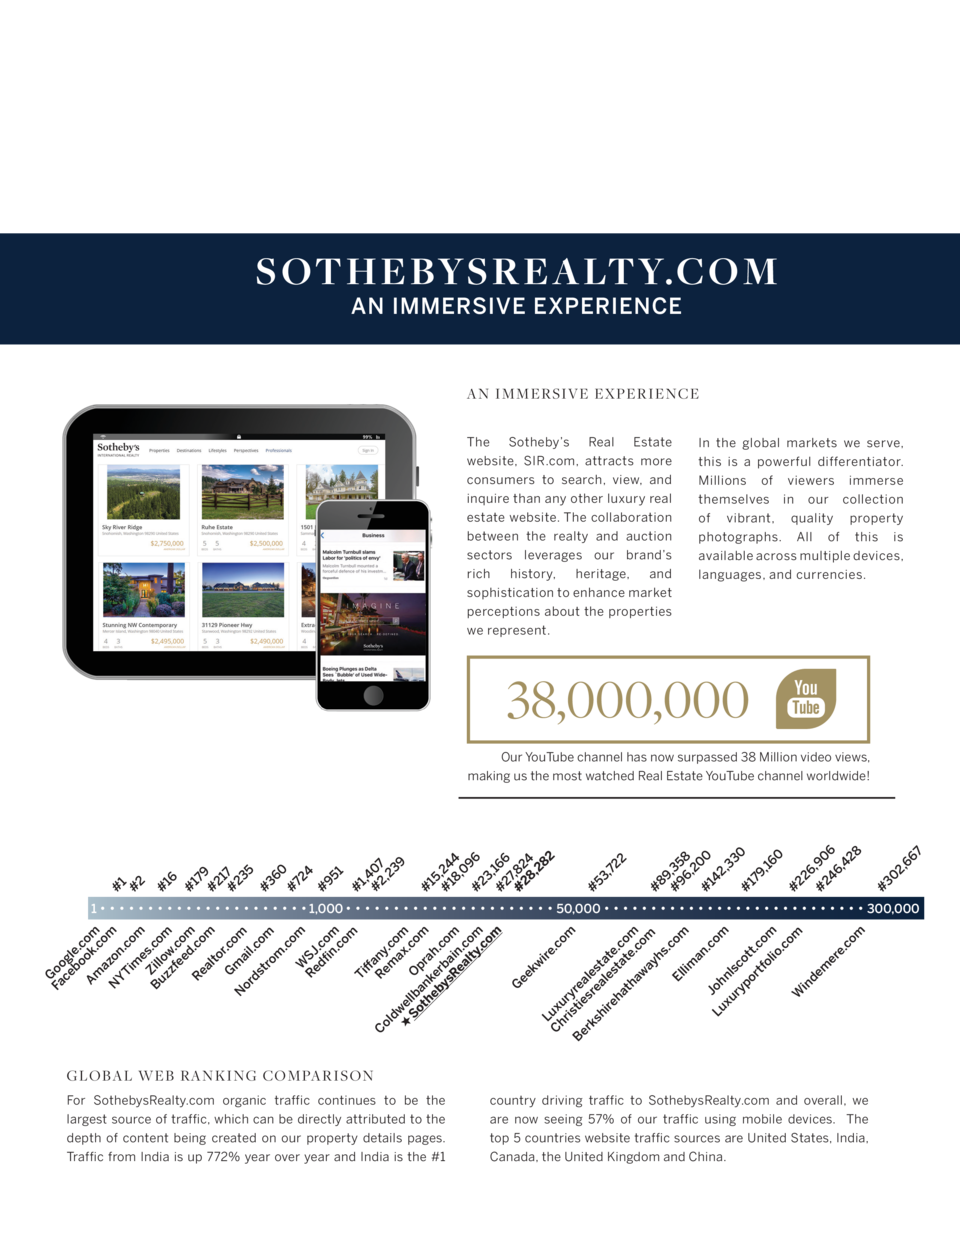 S OTHEBYS R E ALTY.C OM AN IMMERSIVE EXPERIENCE  AN IMMERSIVE EXPERIENCE The Sotheby   s Real Estate website, SIR.com, att...